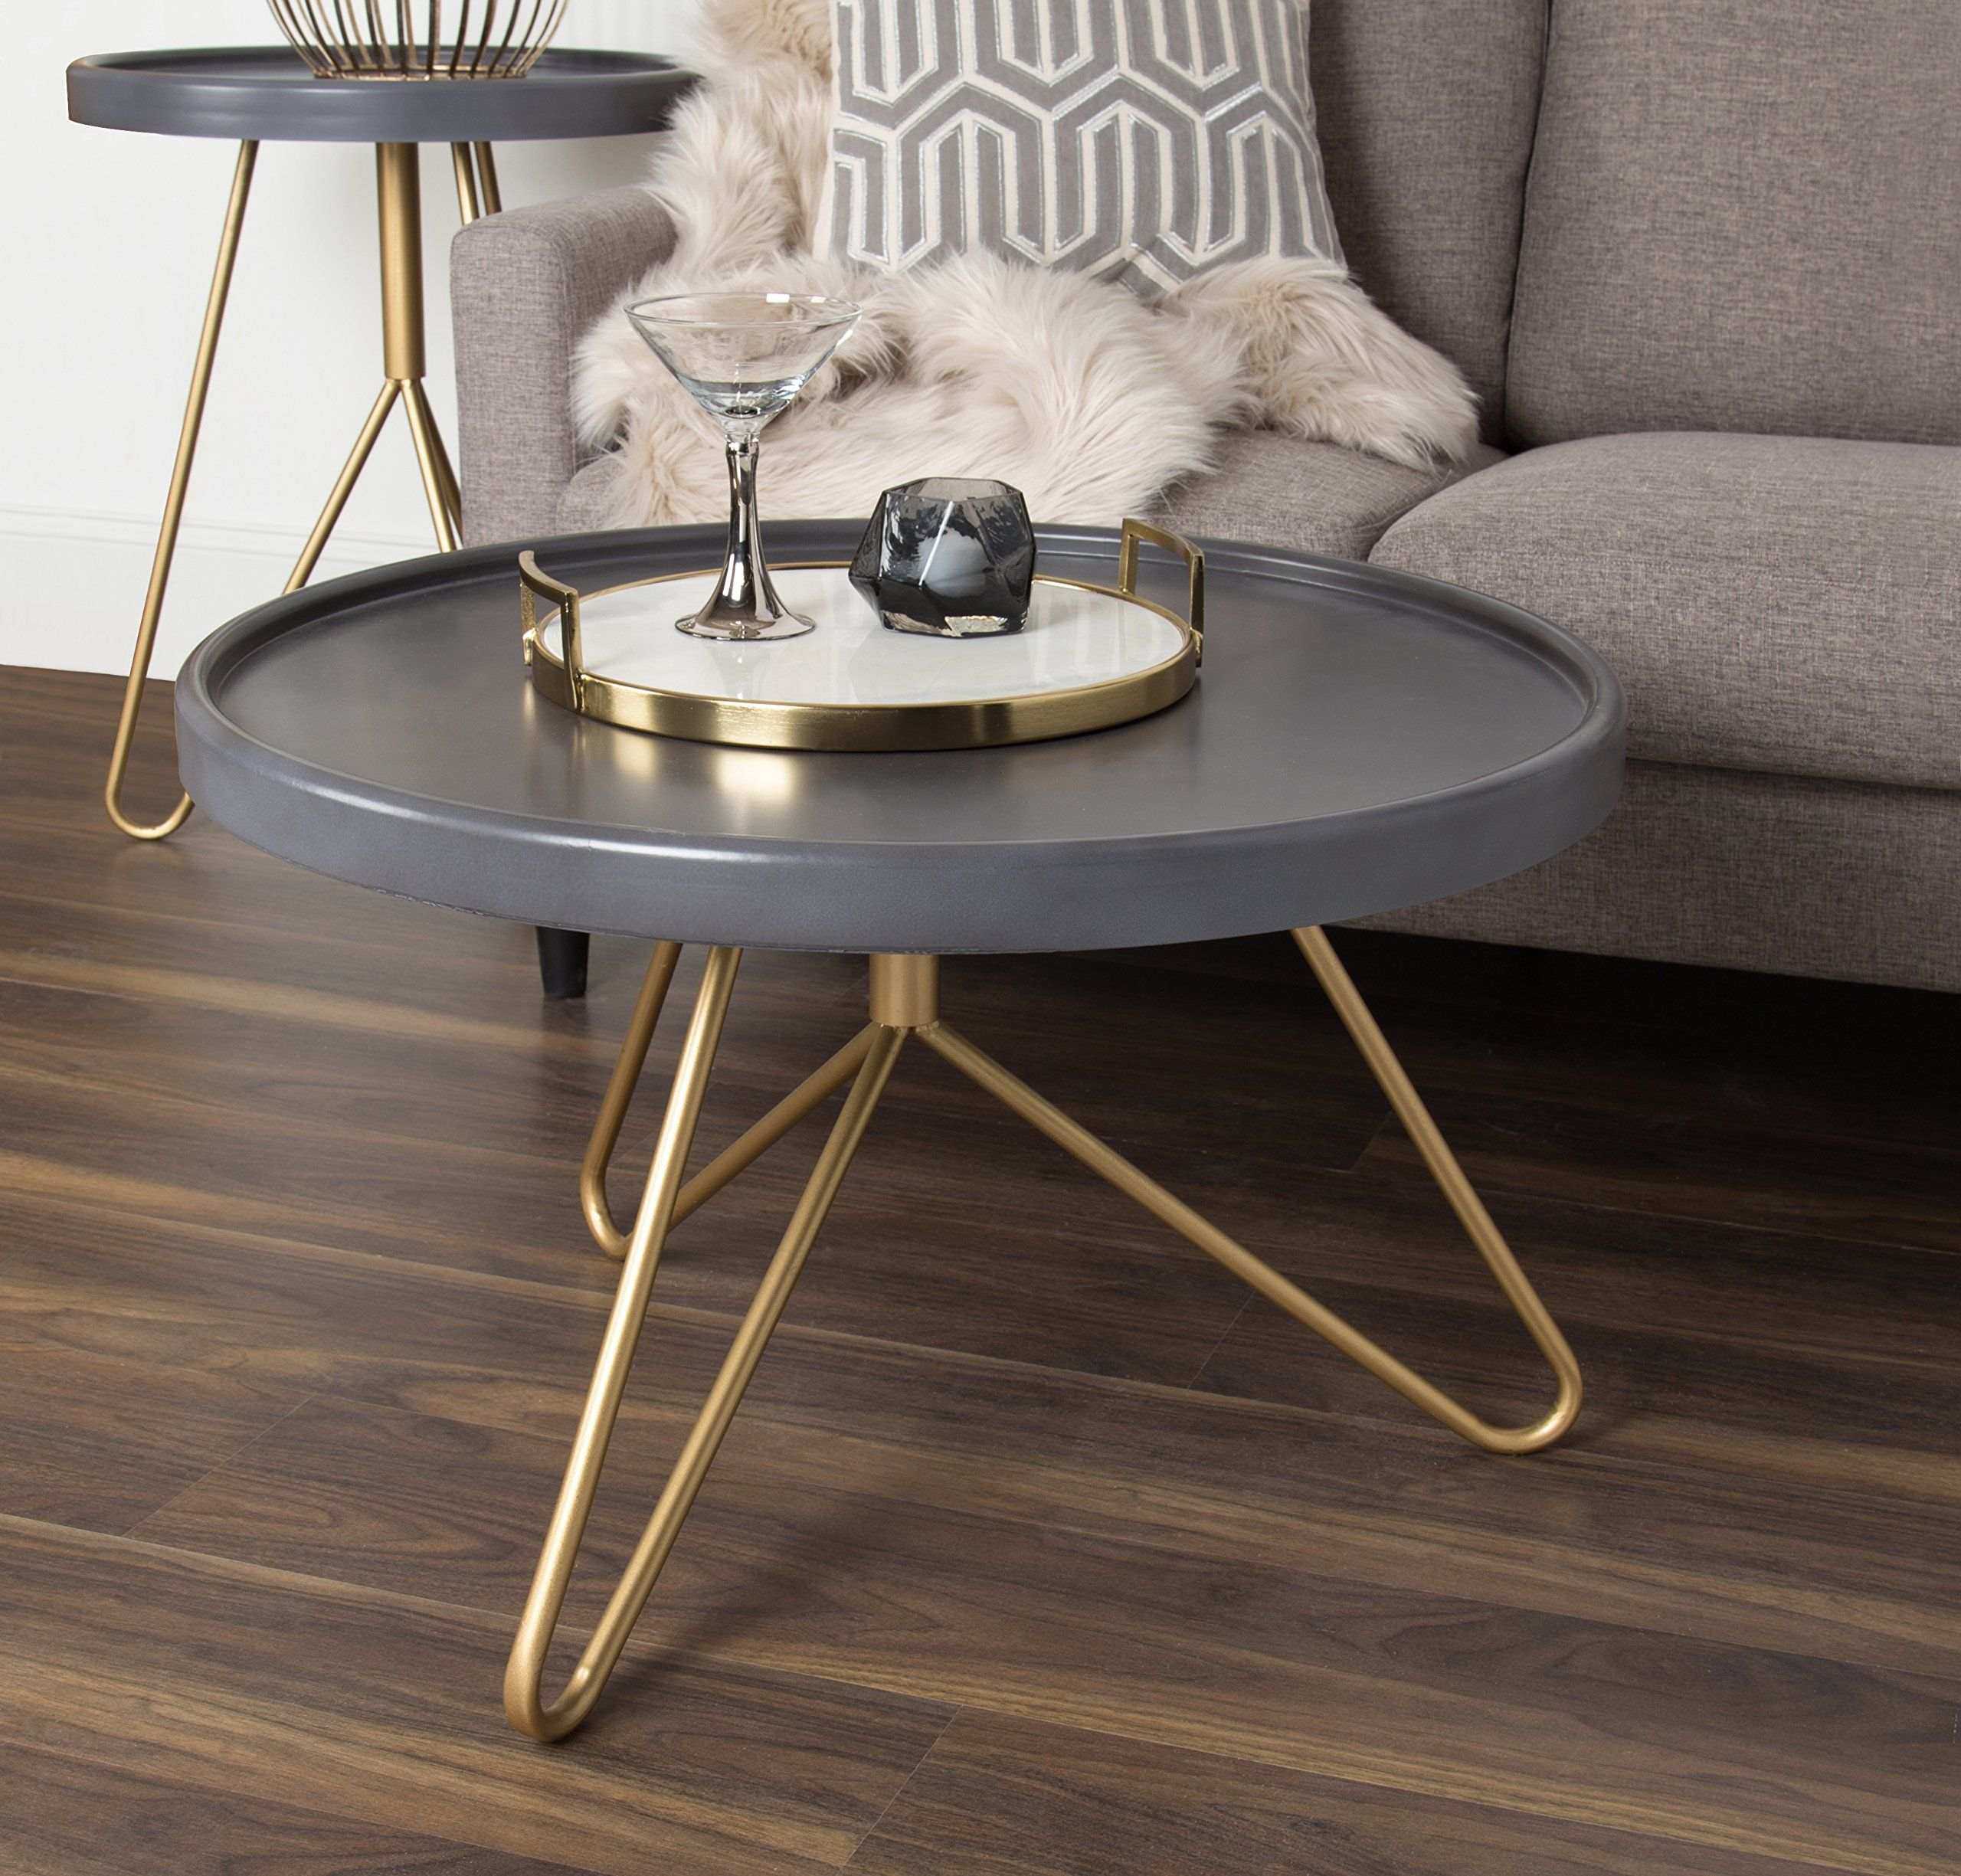 Kate And Laurel Maxey 30inch Round Coffee Table Gray And Gold To Check Out Even More For This Item Coffee Table Round Coffee Table Coffee And End Tables [ 2449 x 2560 Pixel ]